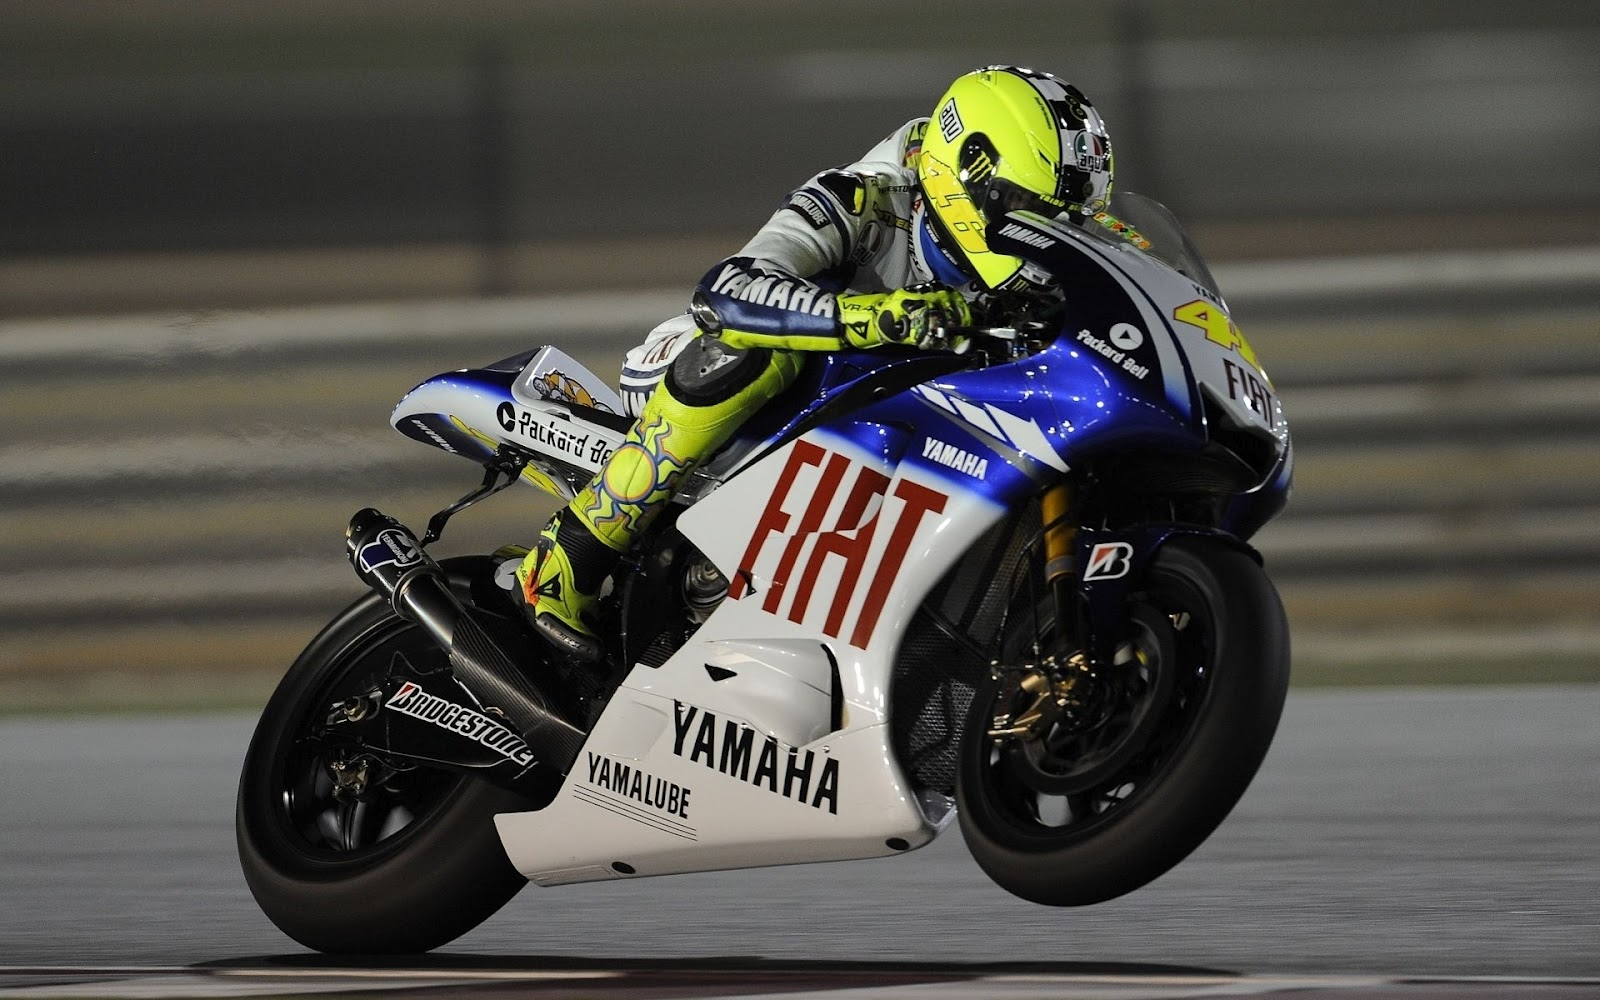 valentino rossi yamaha Valentino Rossi wallpapers in HD